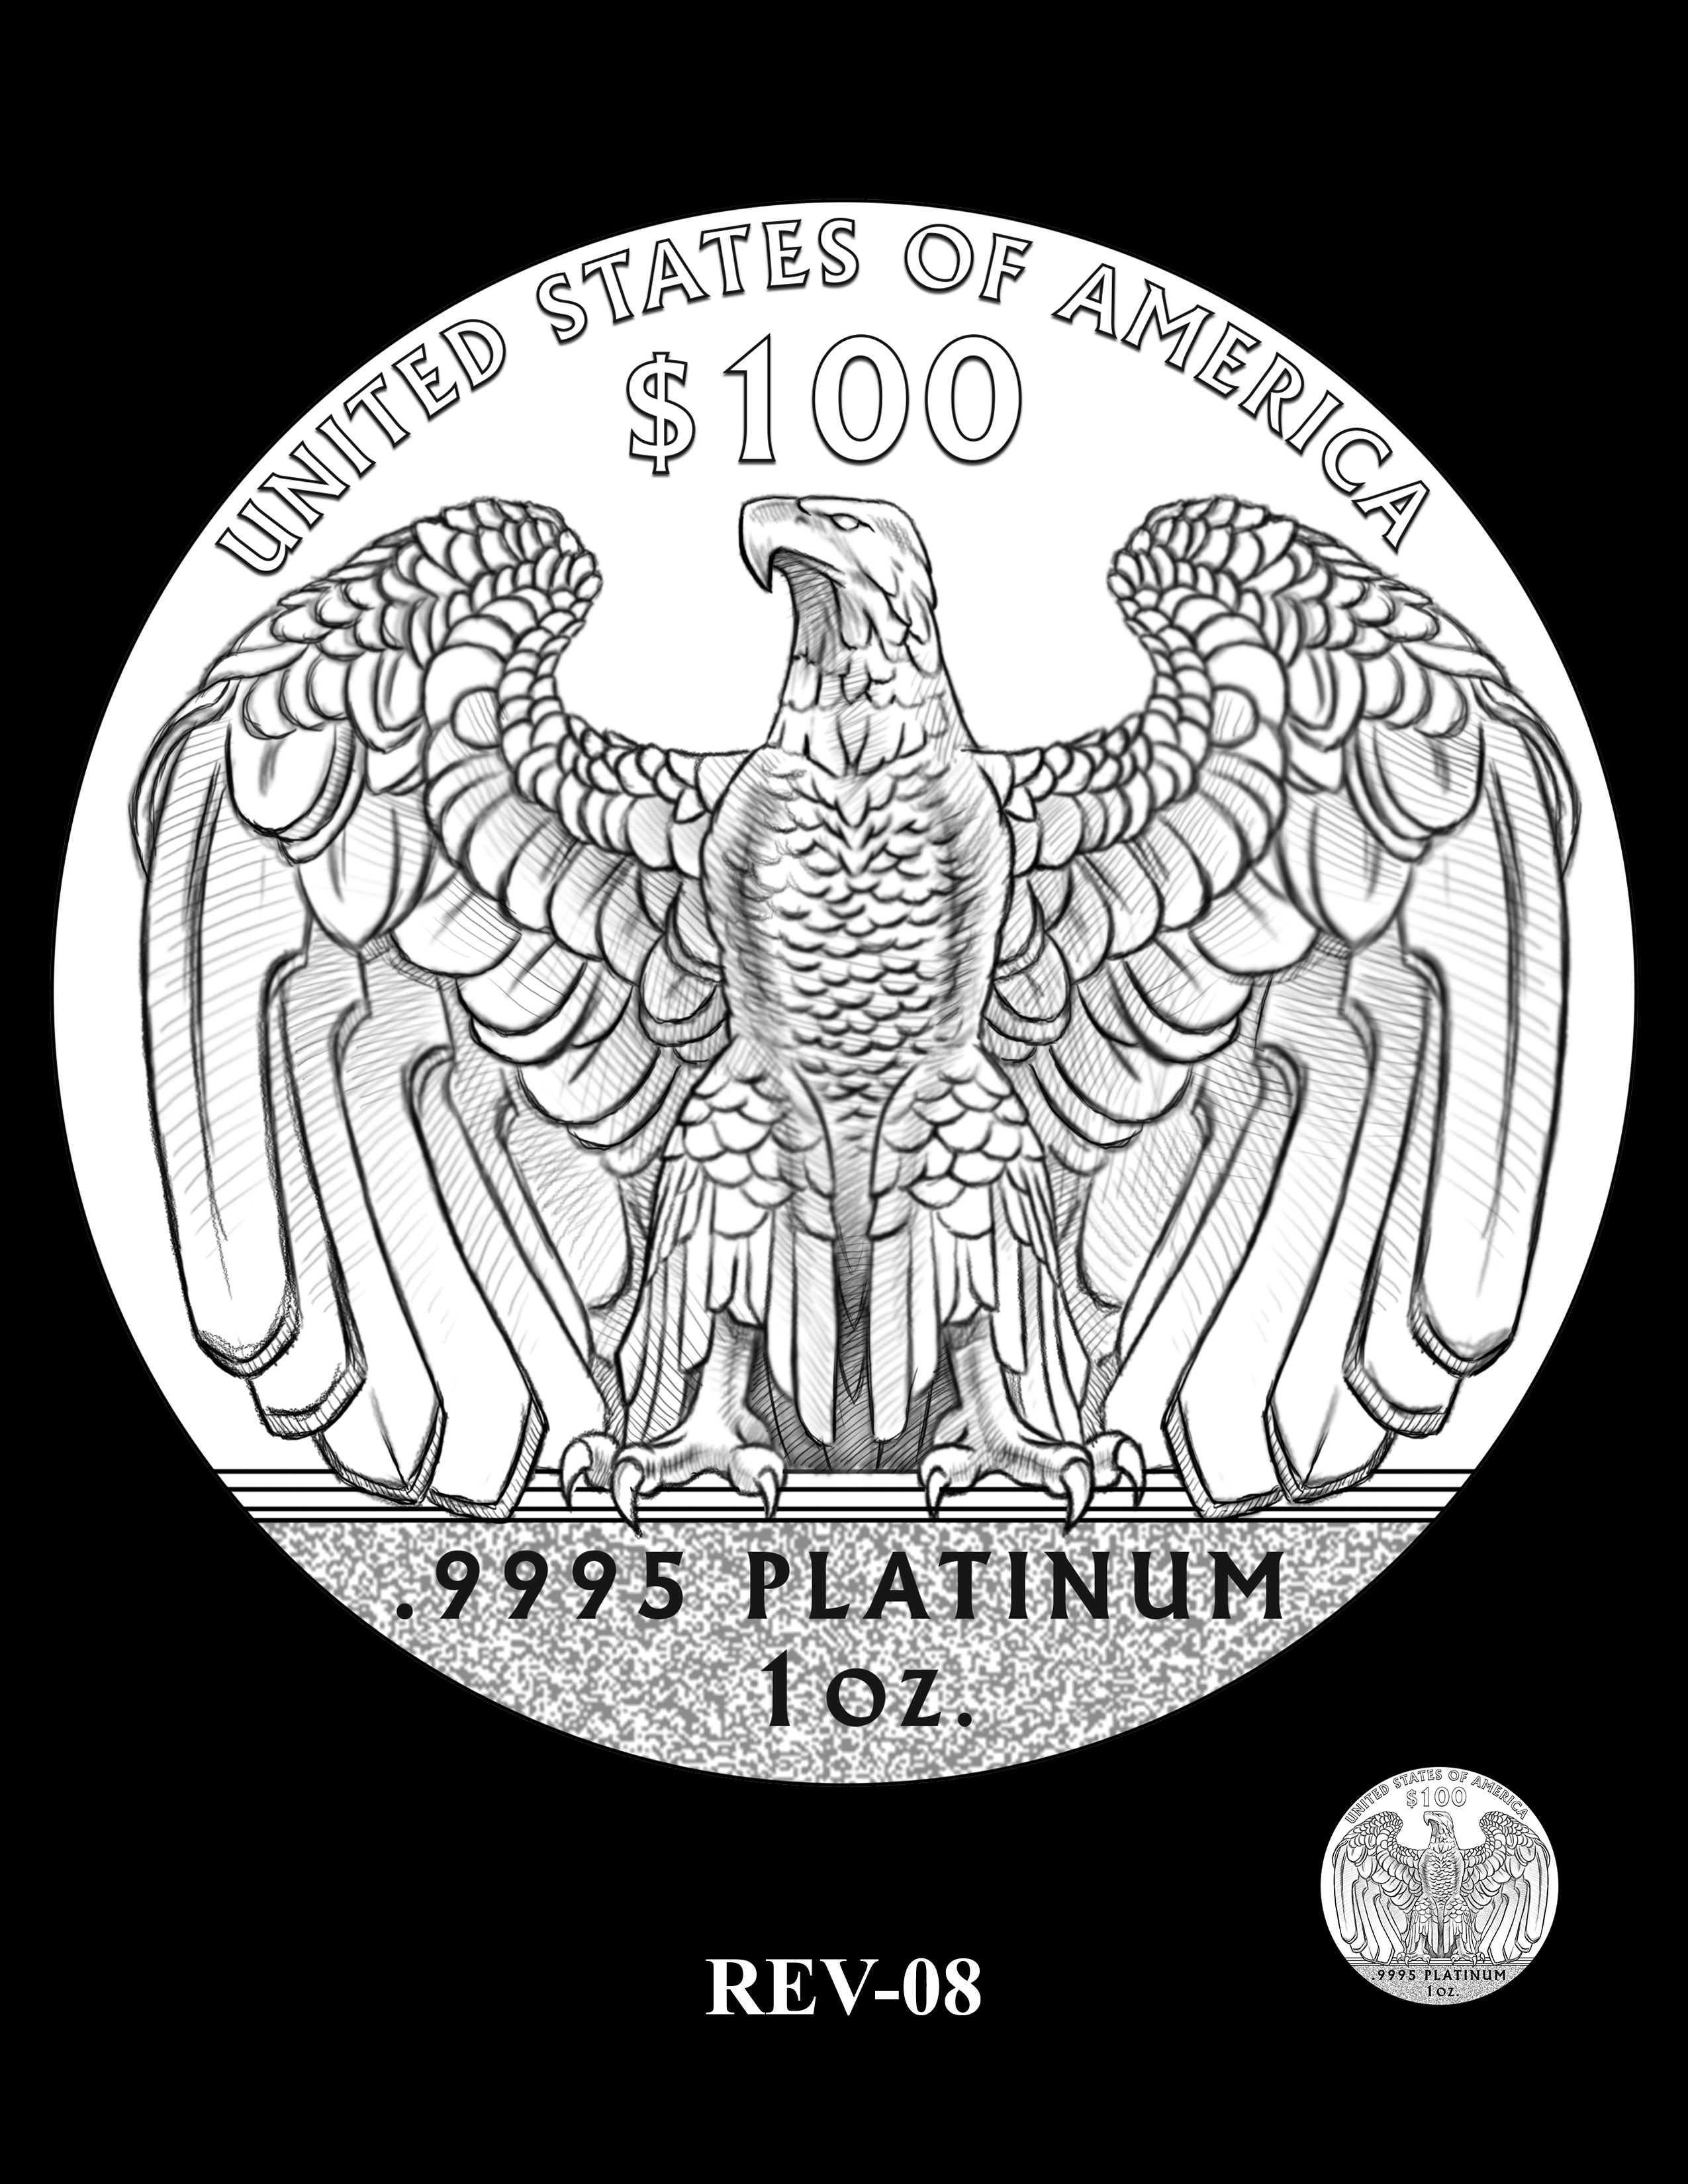 SET08-REV-08 - 2018 2019 and 2020 American Eagle Platinum Proof Program